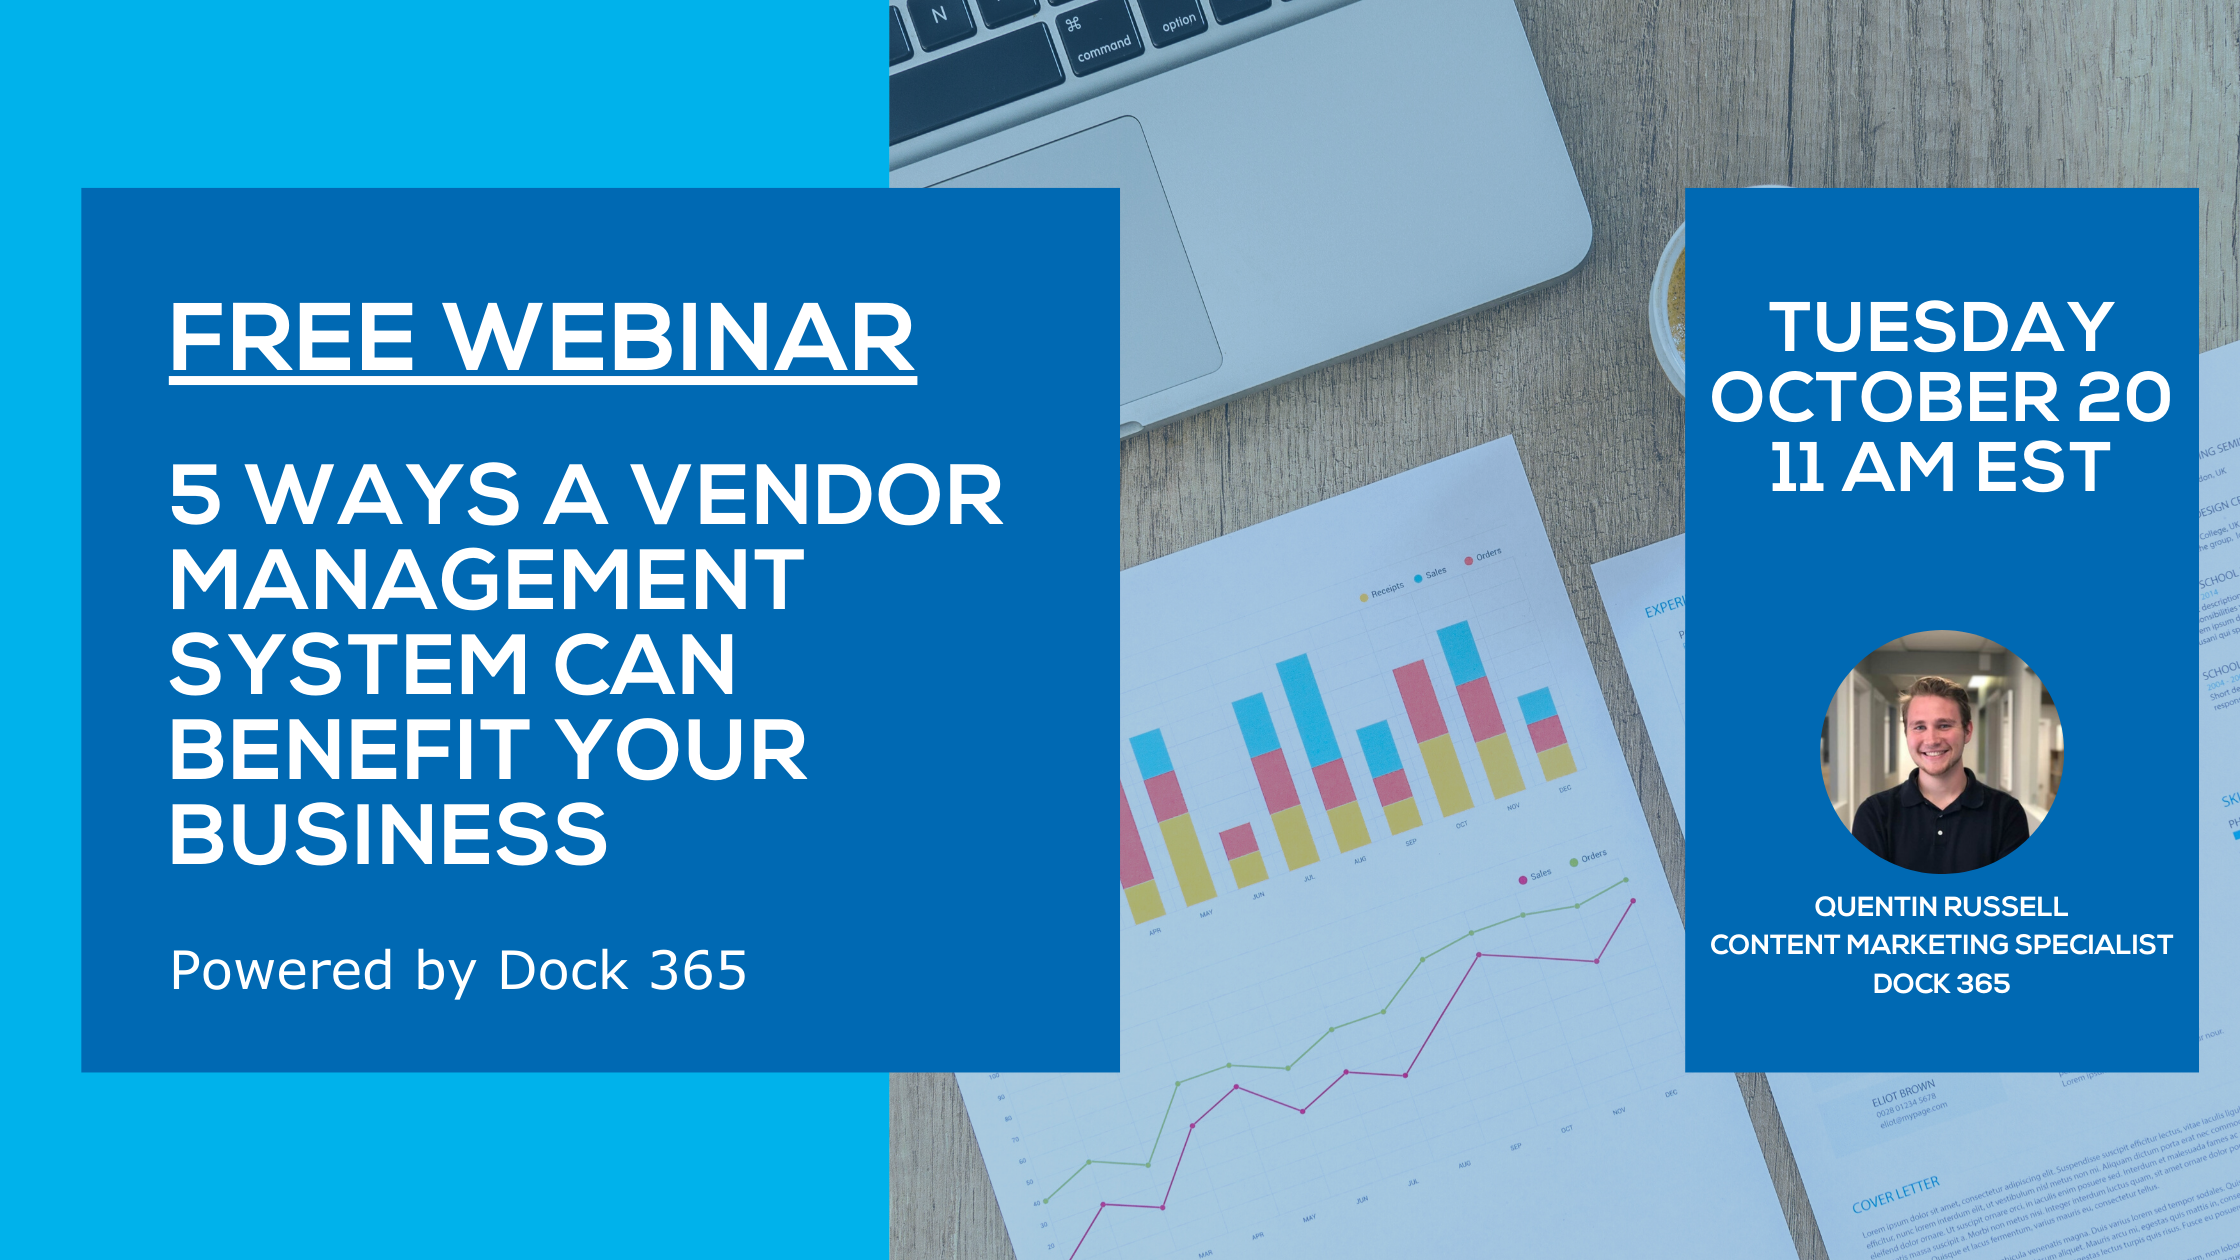 Dock 365 Webinar - 5 Ways a Vendor Management System Can Benefit Your Business